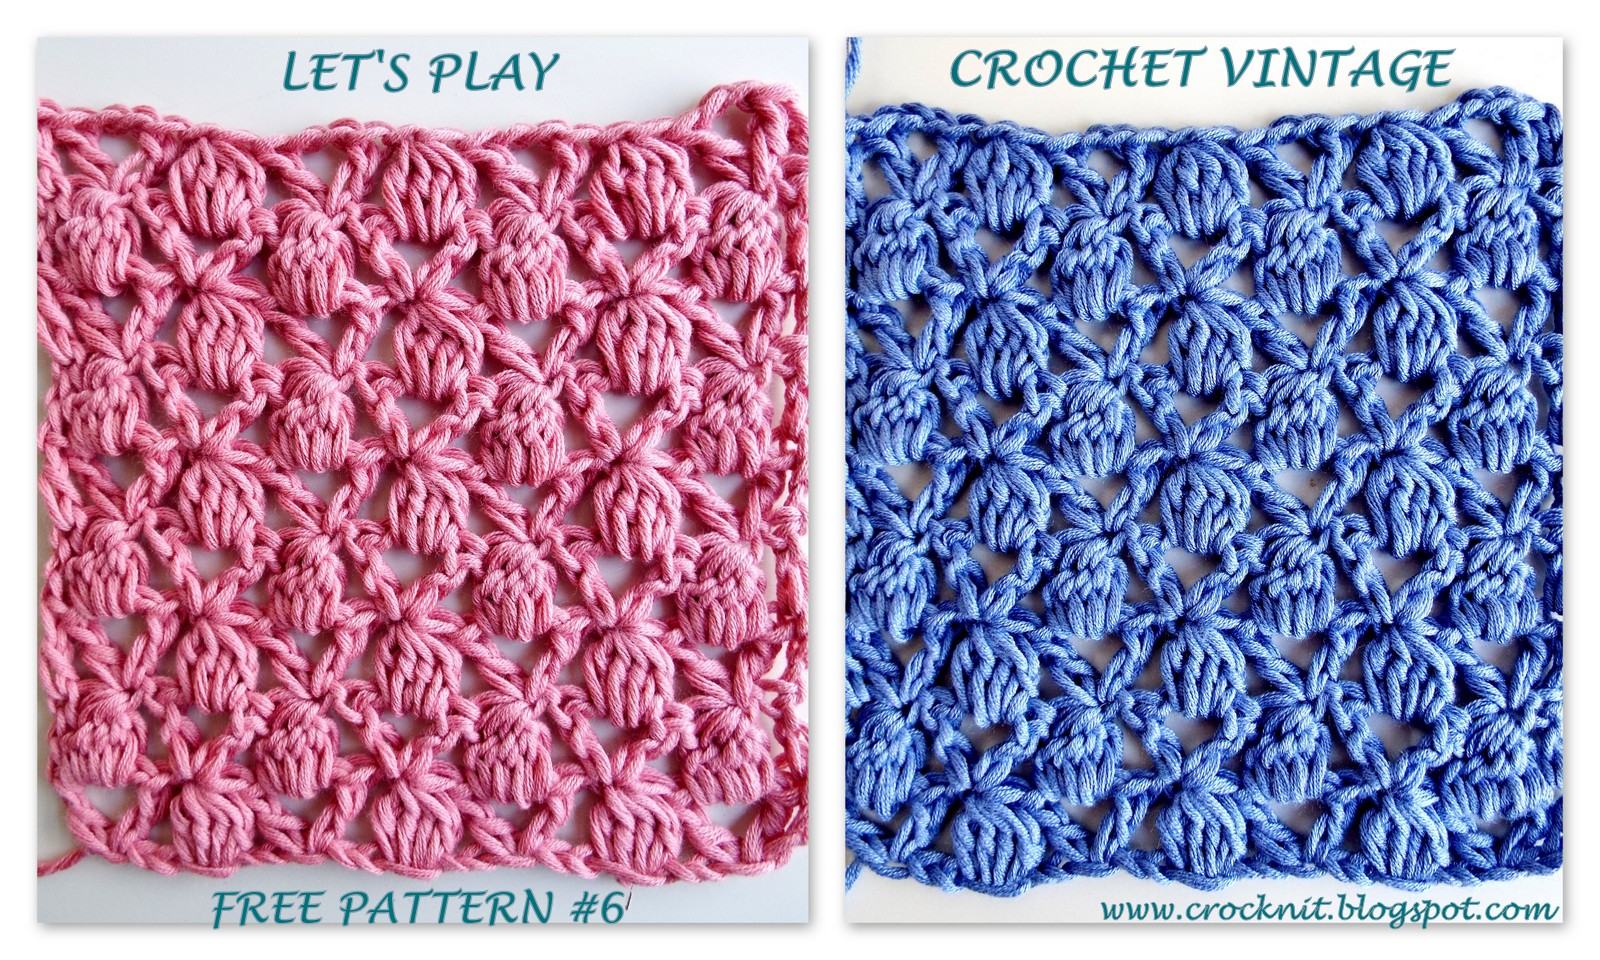 Crochet Stitches Esc : free crochet patterns, clusters, v-stitches, how to crochet,